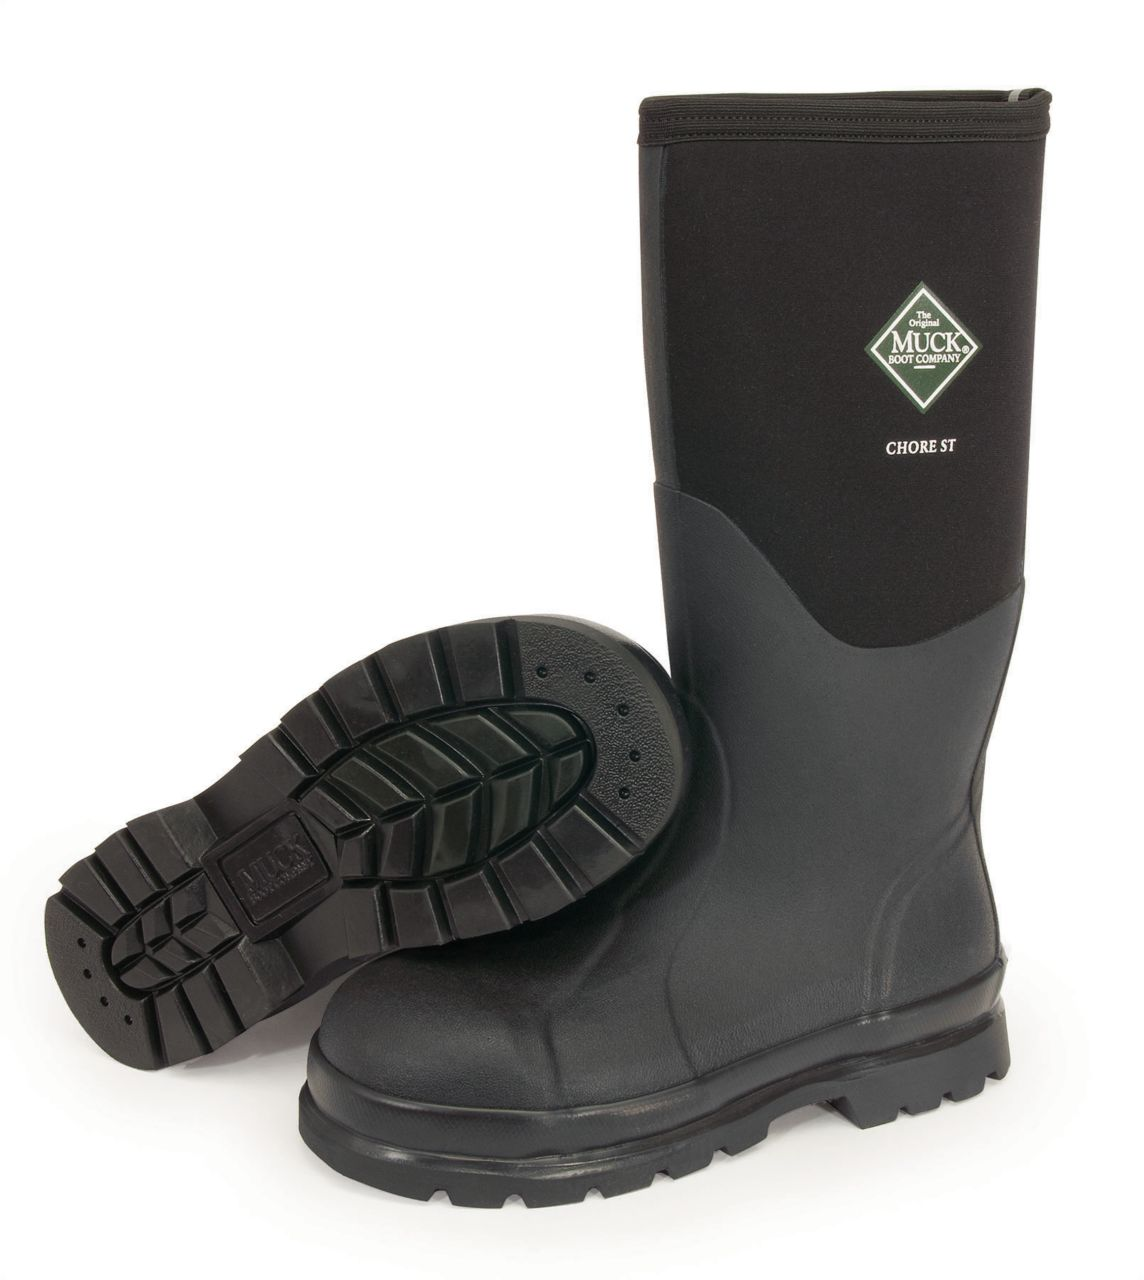 Muck Chore Hi-Safety Toe_3